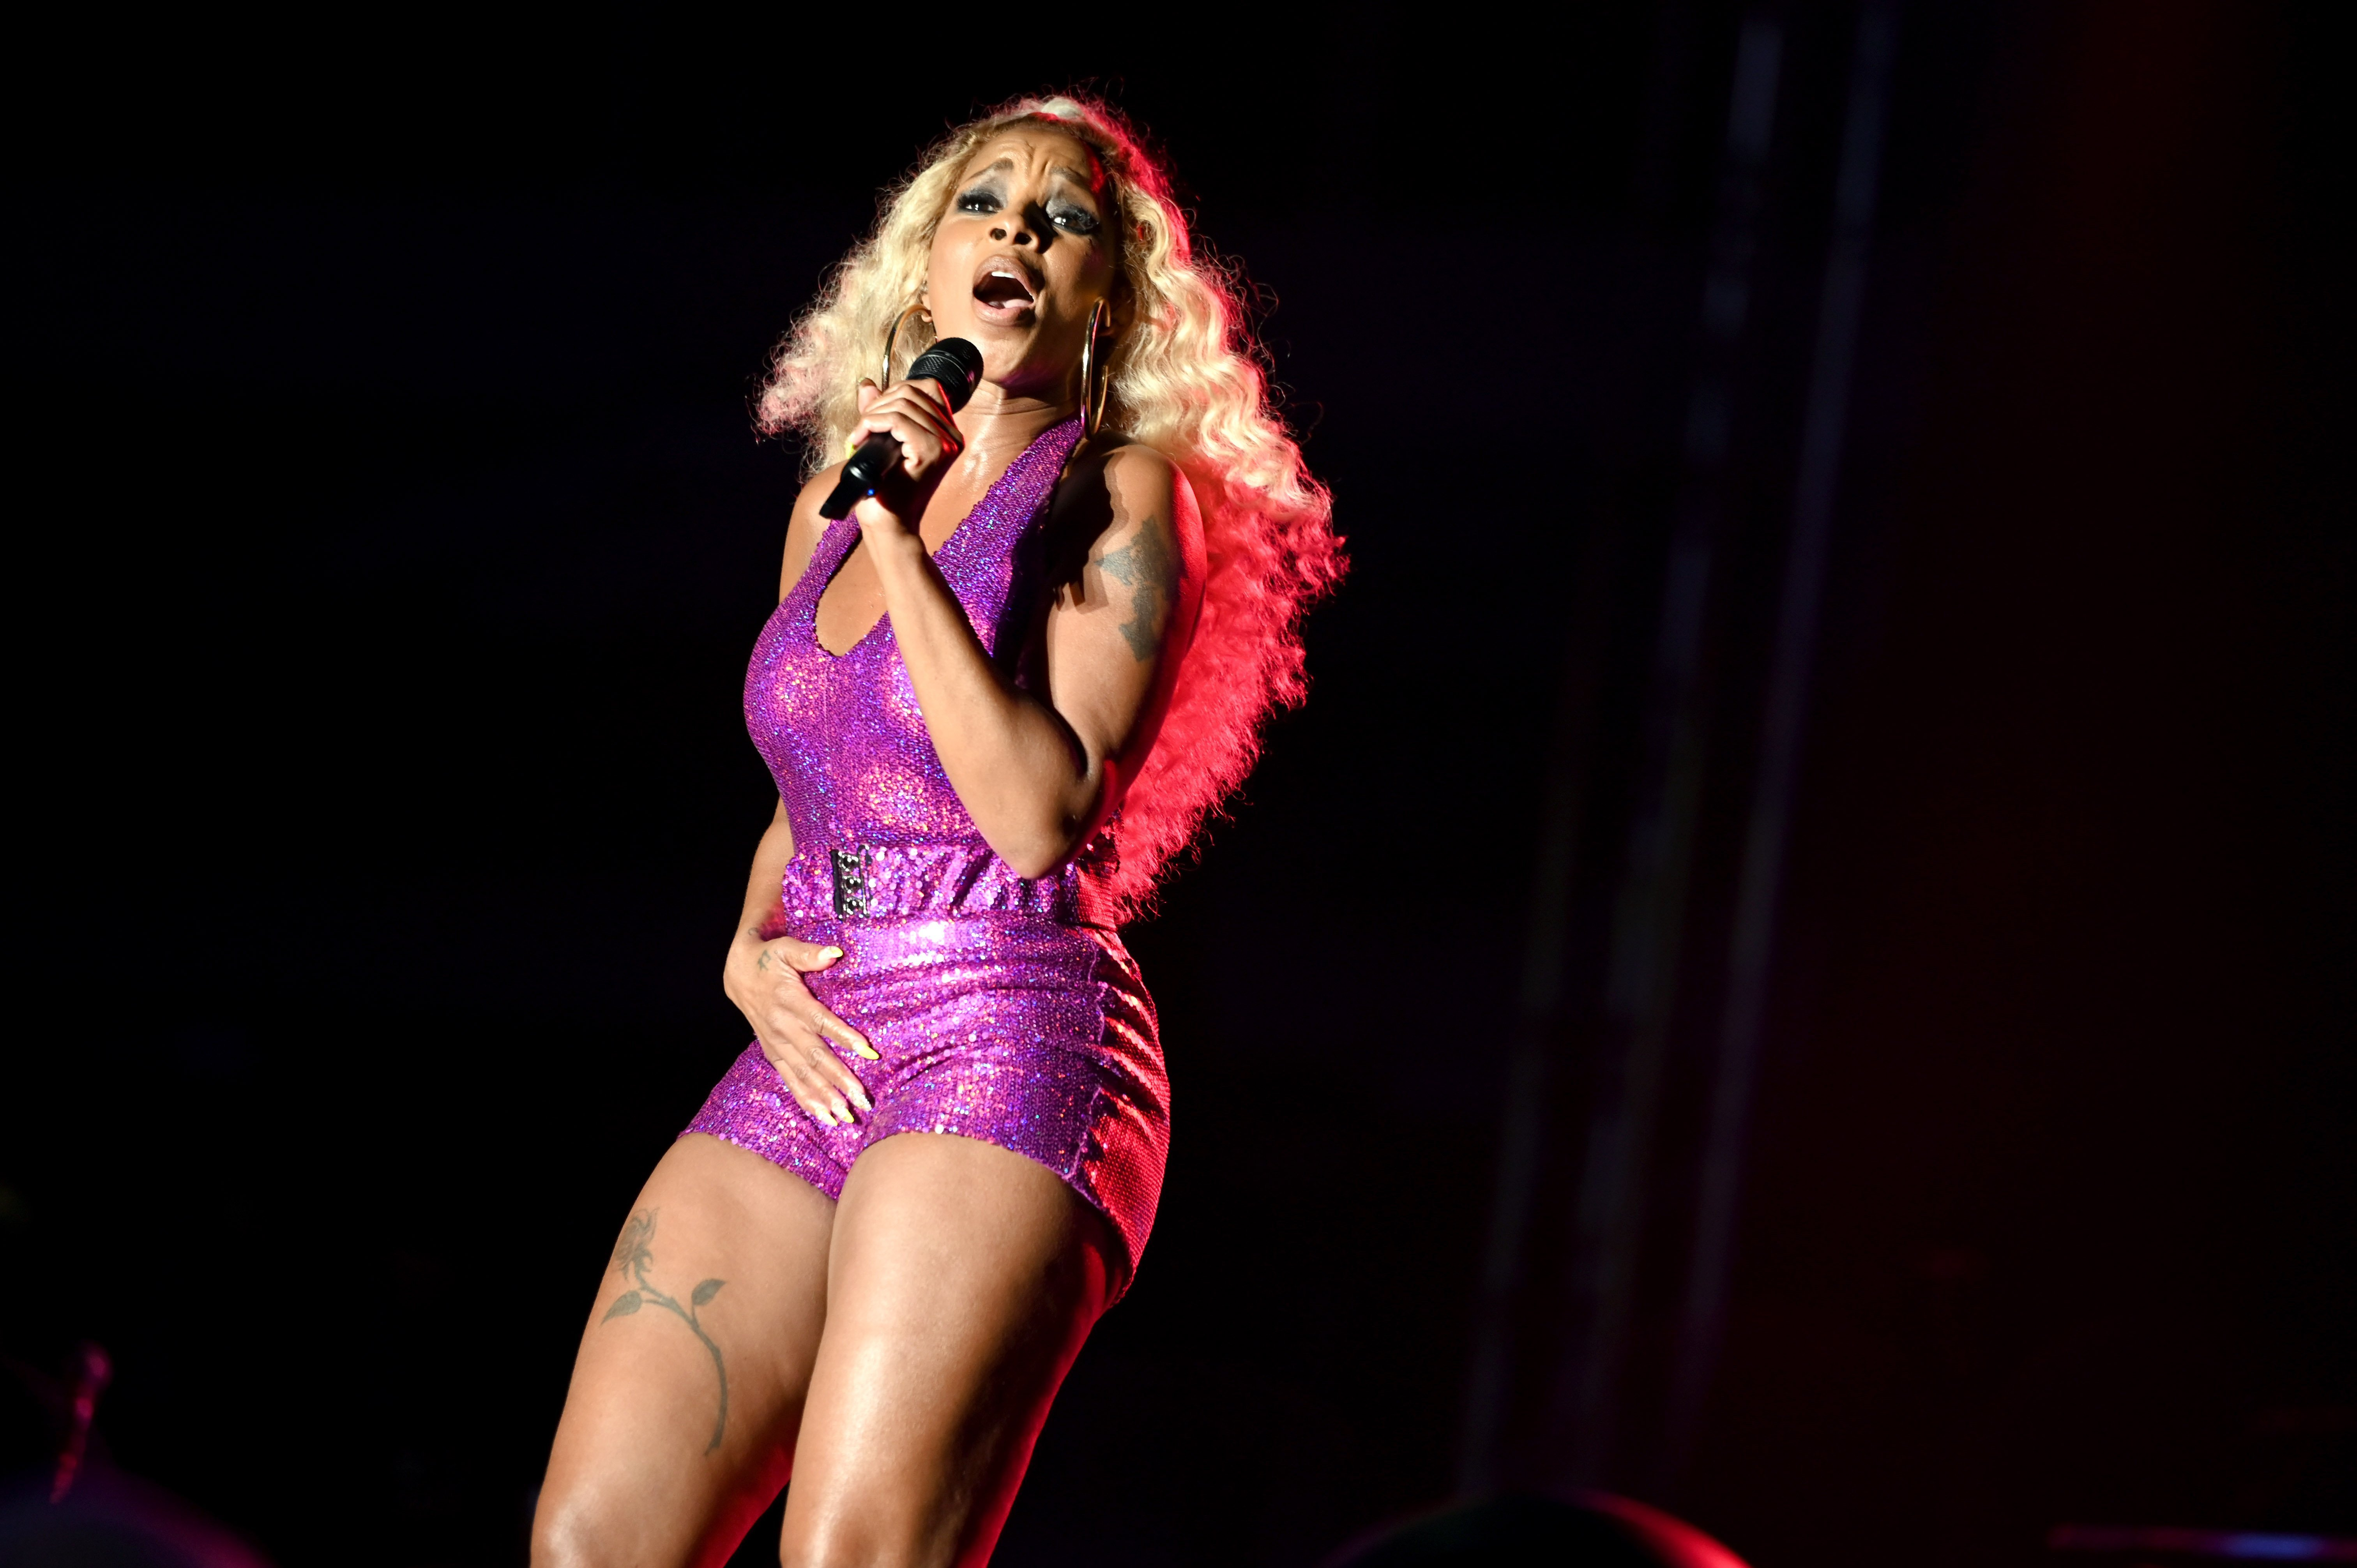 Mary J. Blige performs during the 2019 Cincinnati Music Festival at Paul Brown Stadium on July 27, 2019. | Photo: GettyImages